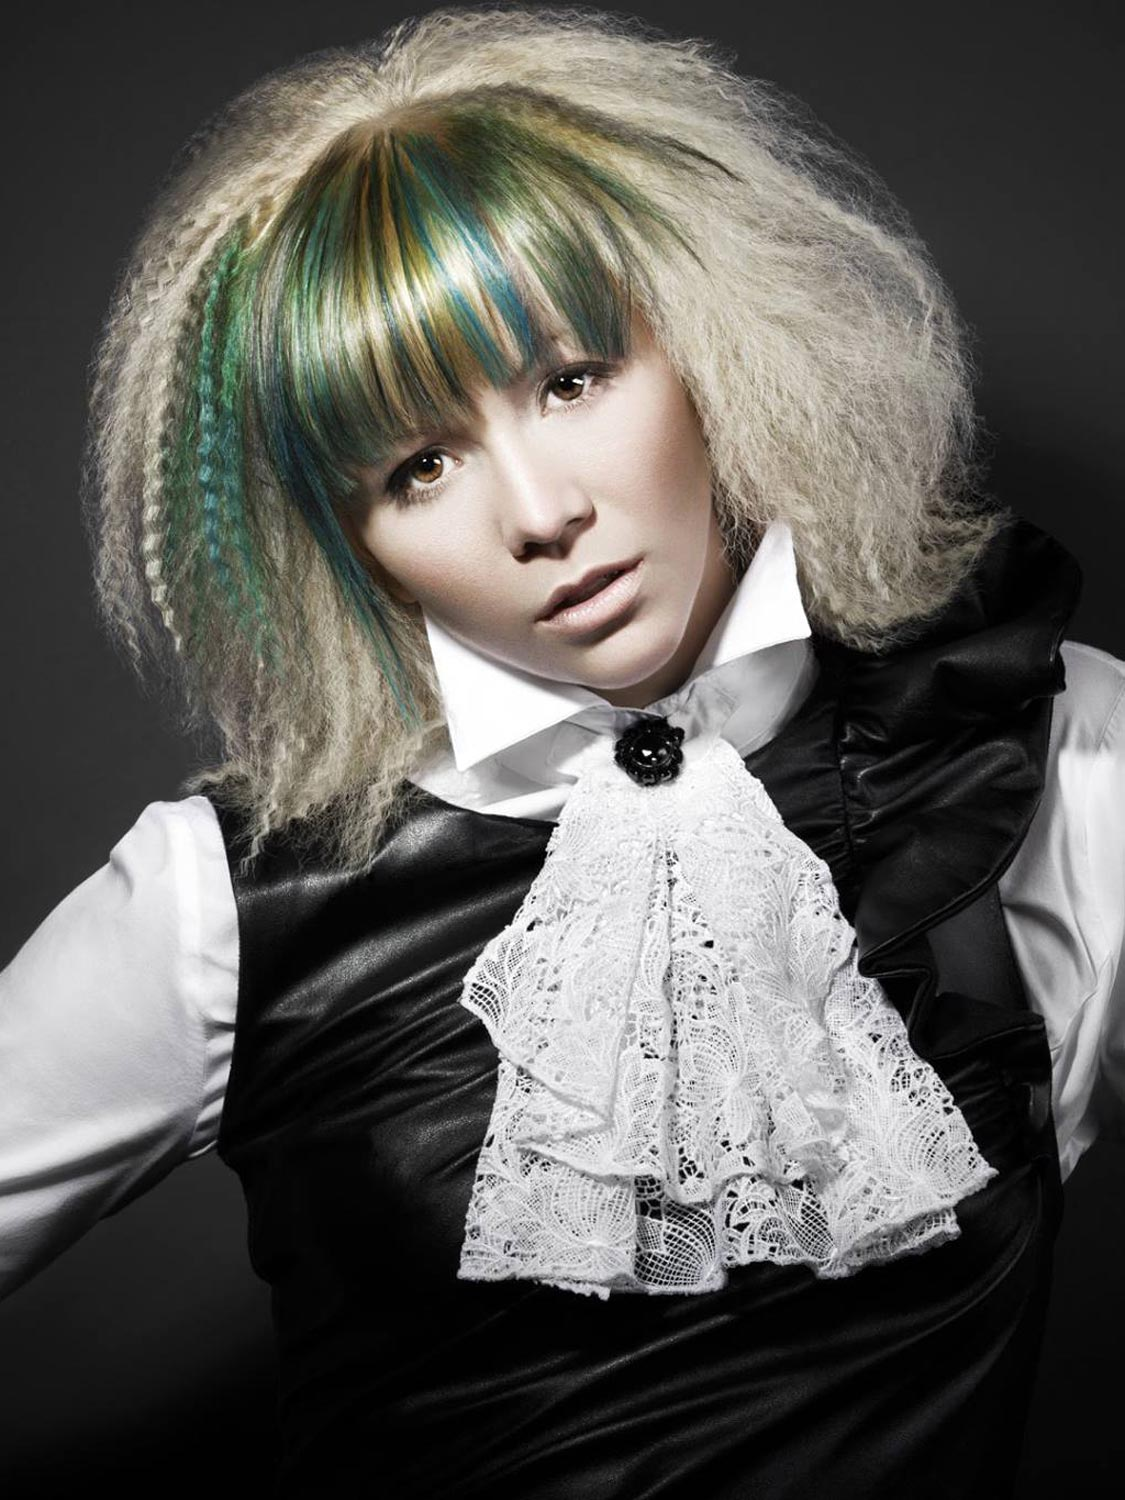 Michal Moučka, Vlasový mág, České Budějovice – nominace v soutěžní kategorii Color Zoom Collection 2015 GLOBAL NEW TALENT COLORIST.